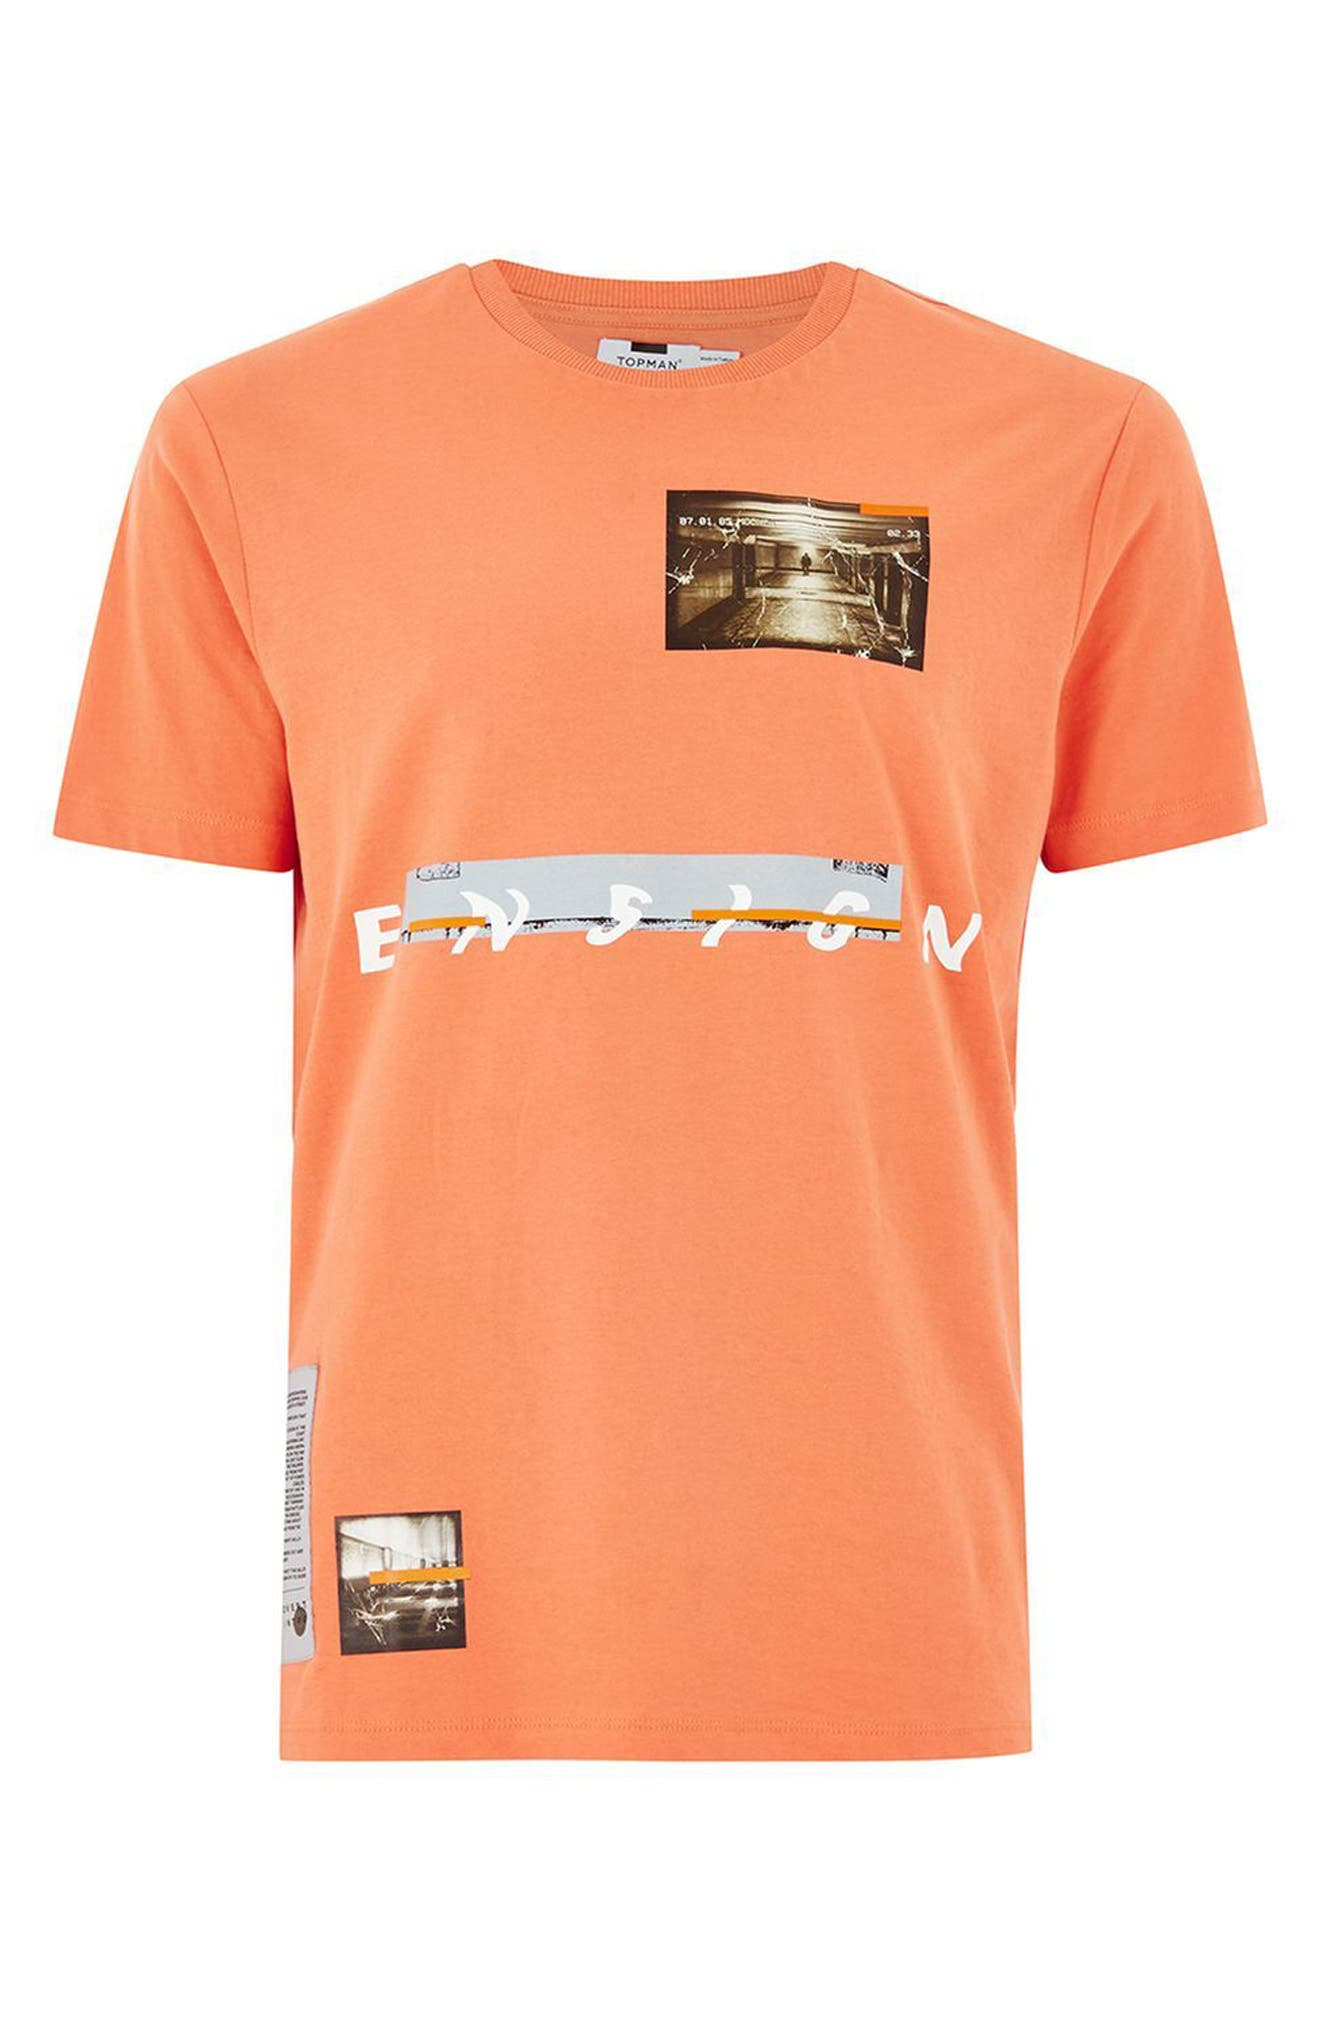 Topman Ensign Graphic T-Shirt